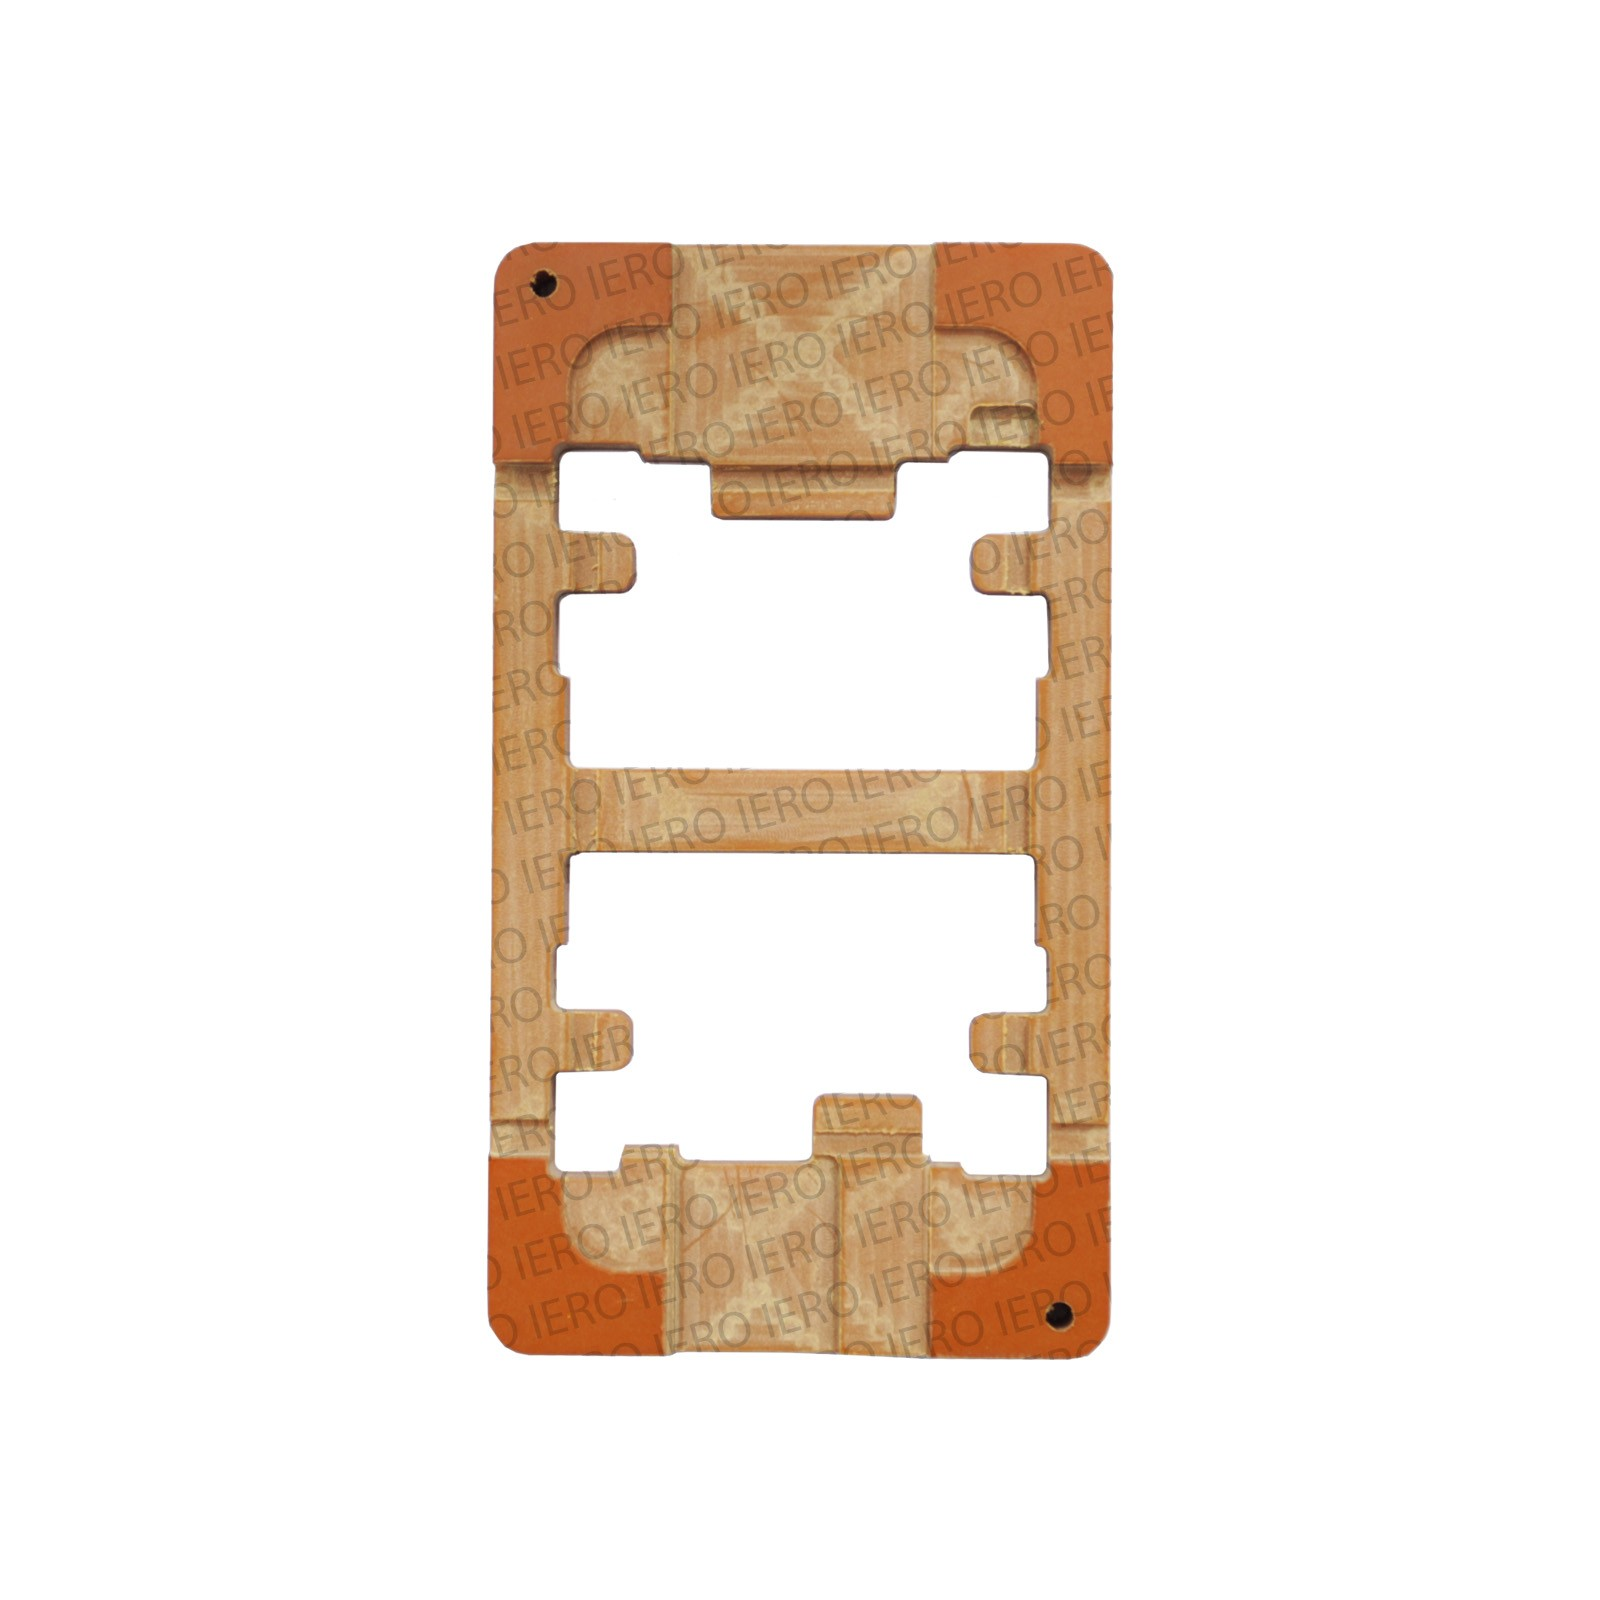 Holder Mold for LCD Glass Repair Glue Refurbishment on iPhone 4/4S